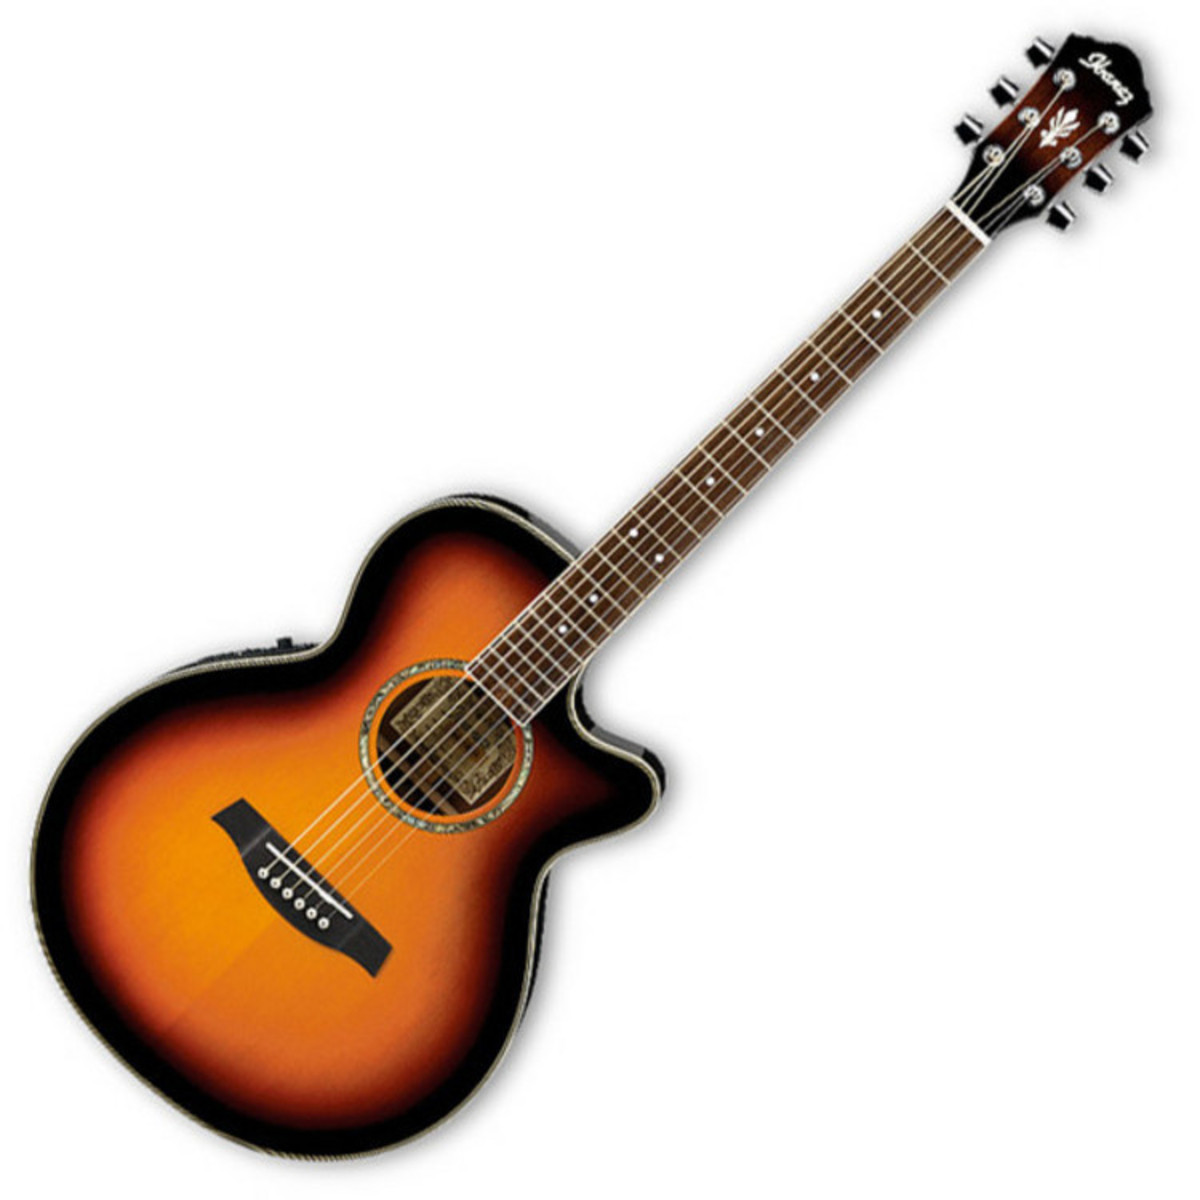 disc ibanez aeg10e electro acoustic guitar vintage burst. Black Bedroom Furniture Sets. Home Design Ideas